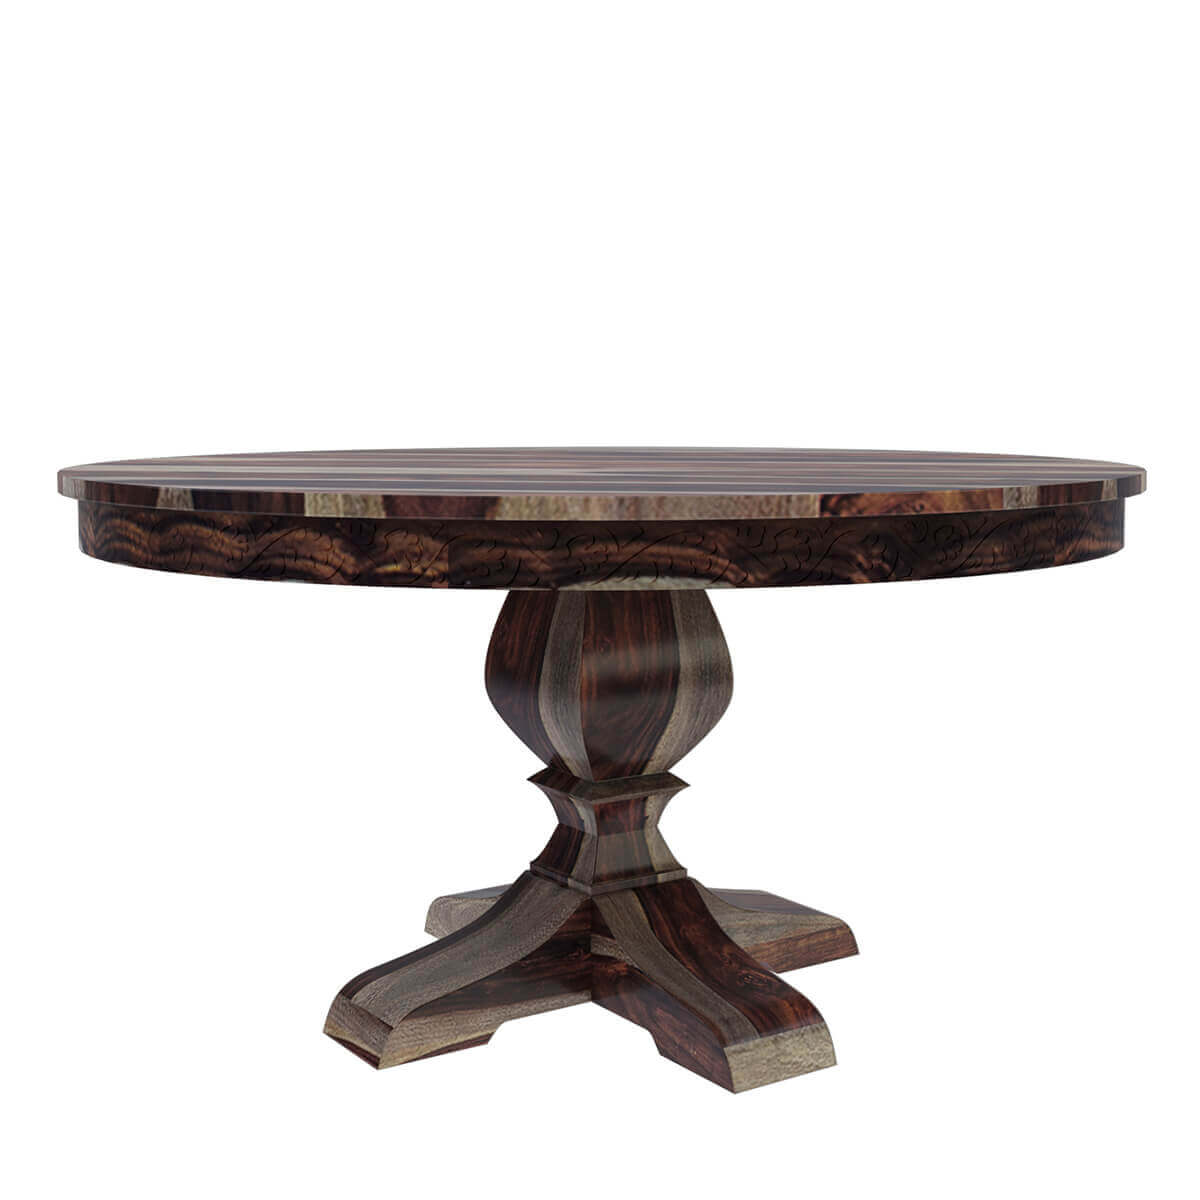 Brown Dallas Solid Wood 60quot Round Pedestal Dining Table : 71821 from www.sierralivingconcepts.com size 1200 x 1200 jpeg 535kB